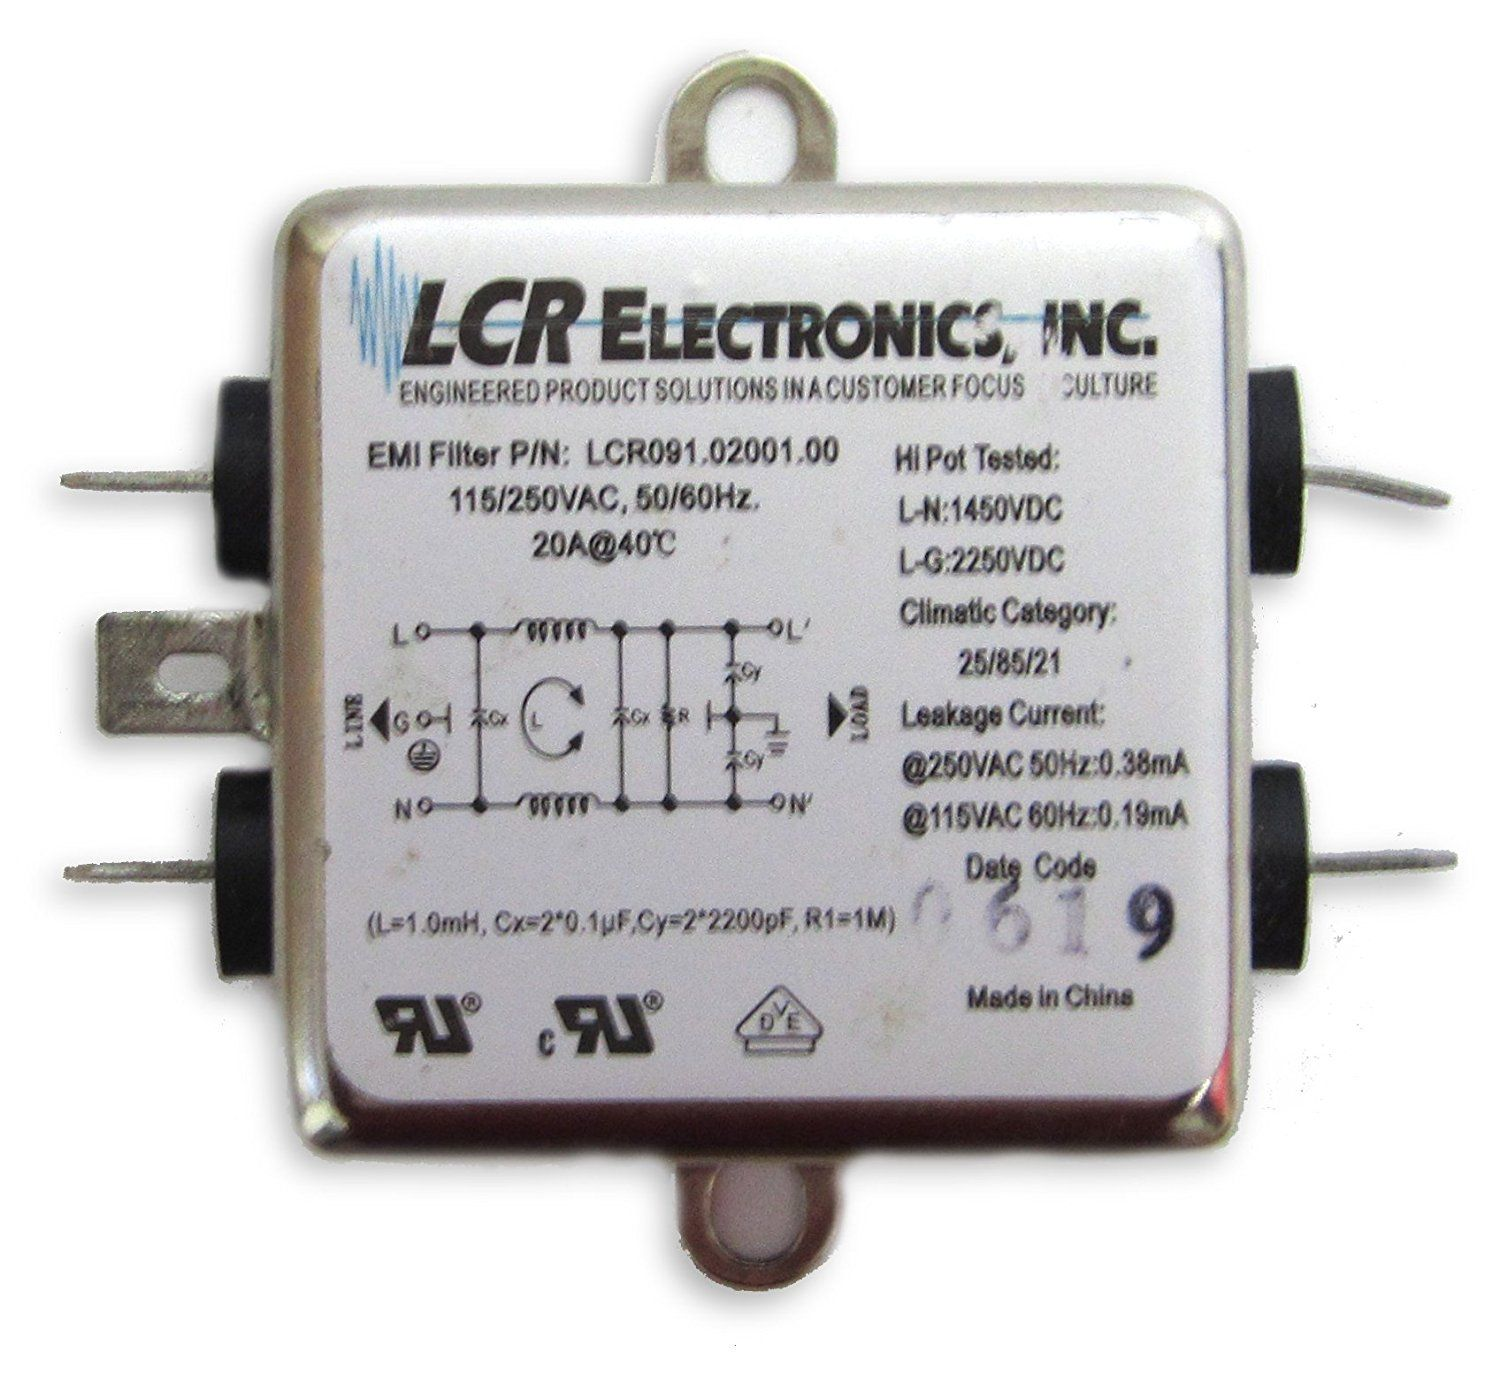 Lcr Electronics Emi Rfi Filters Emifilters Rfifilters Pin Diode Rf Switch Circuit Radioelectronicscom